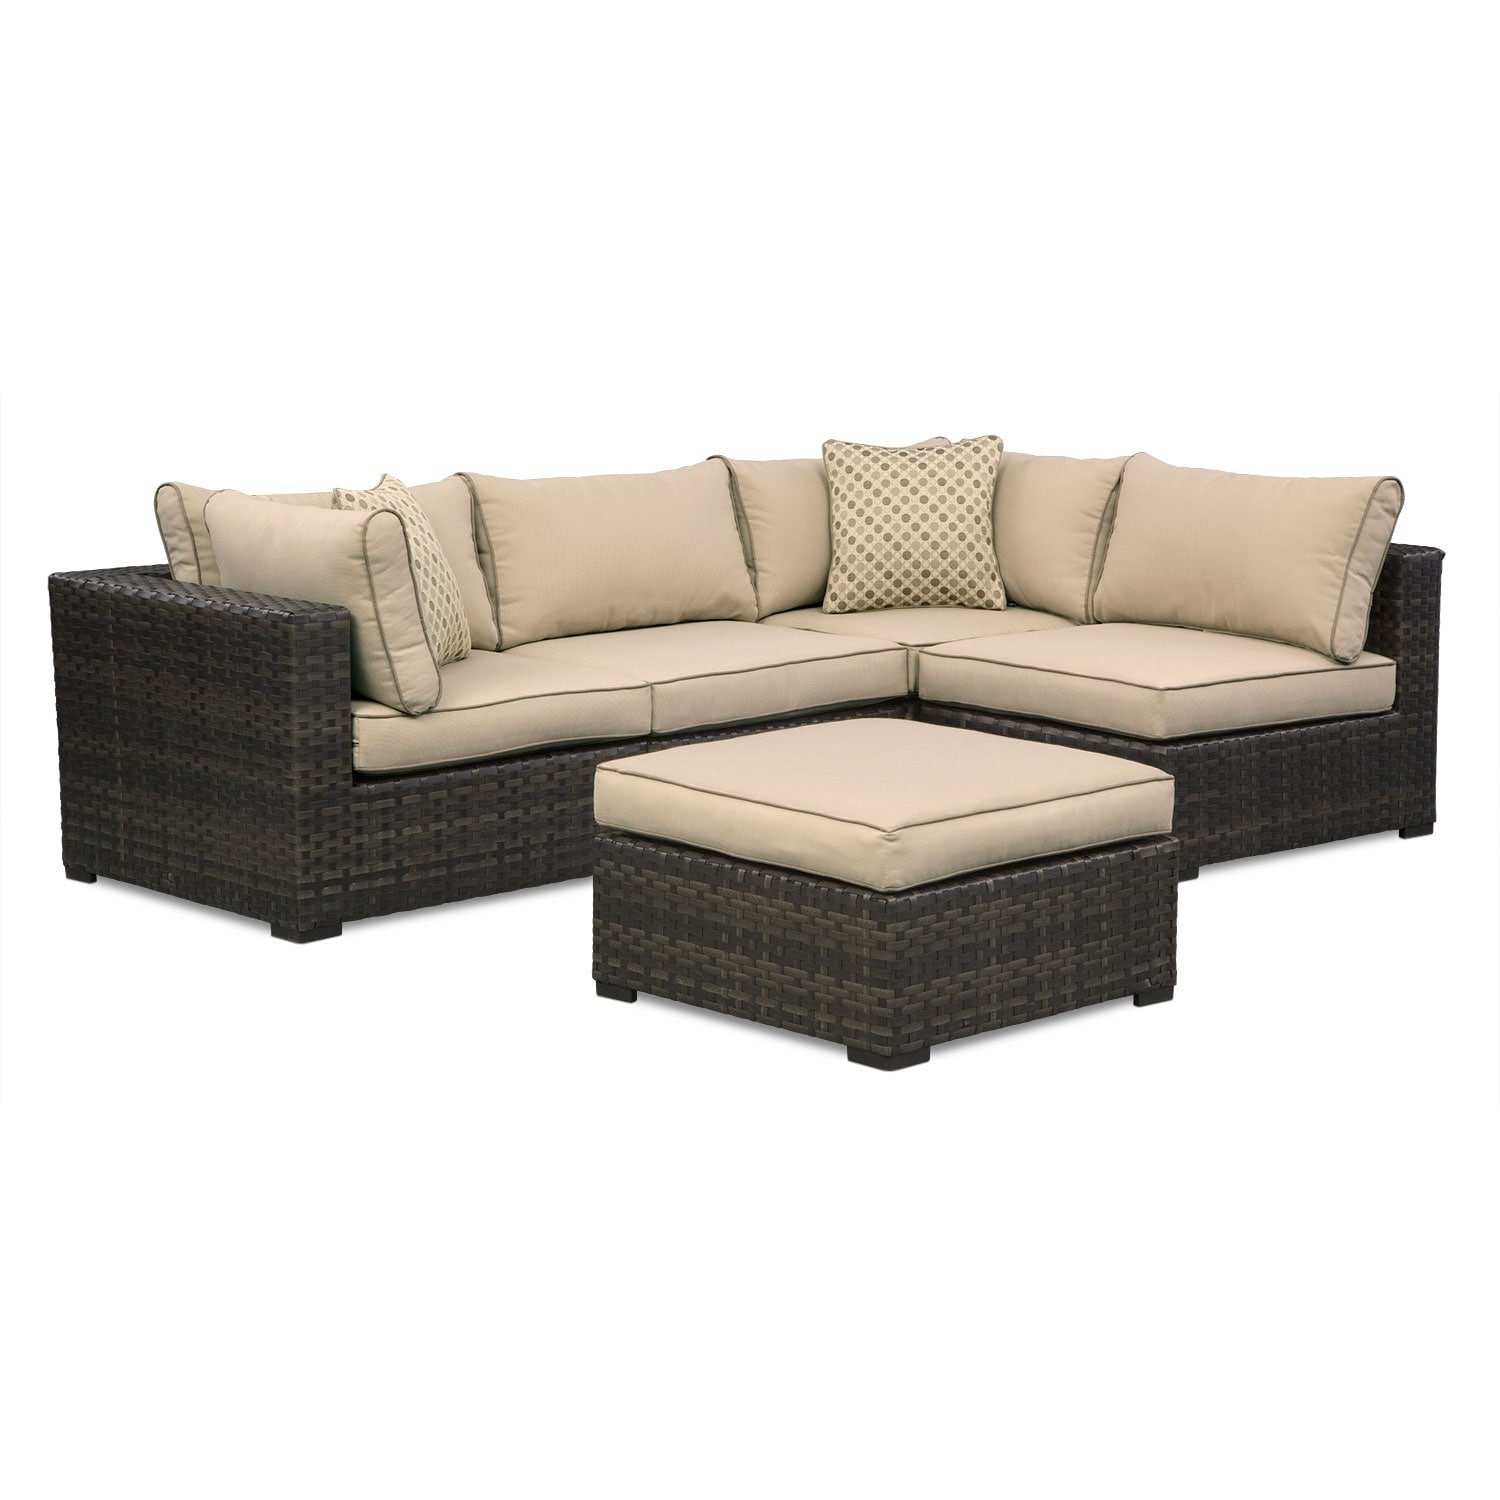 Outdoor Furniture - Regatta 4-Piece Outdoor Sectional and Ottoman Set - Brown